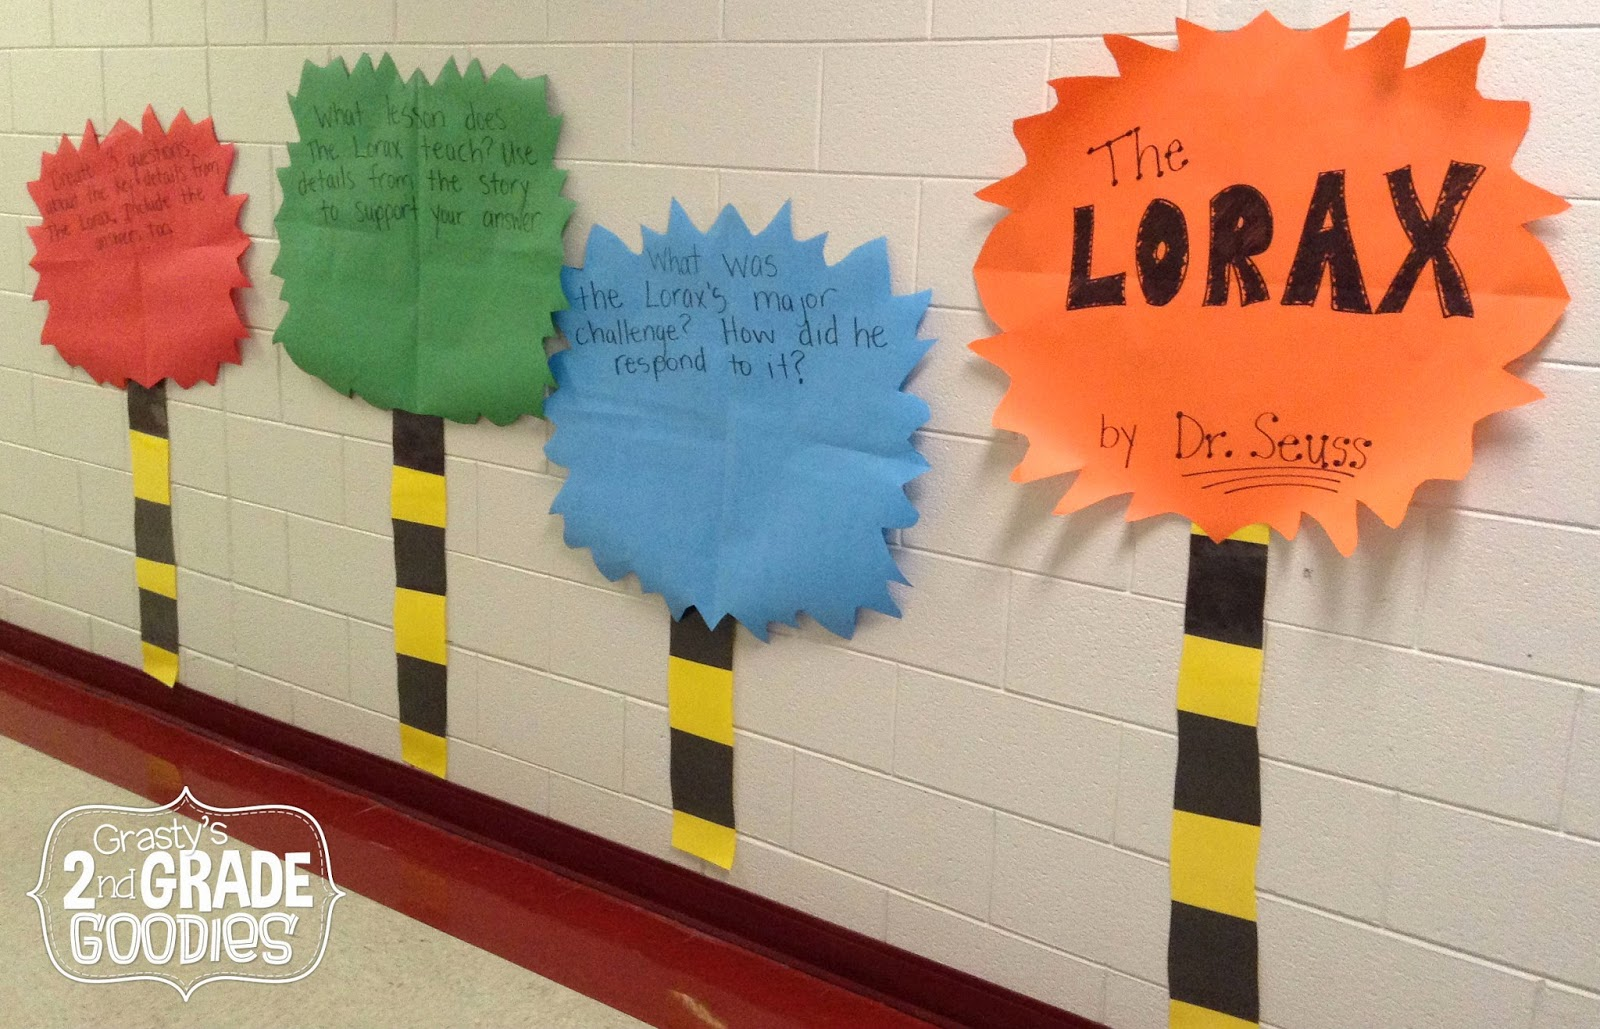 Grasty S 2nd Grade Goo S Earth Day Fun With The Lorax